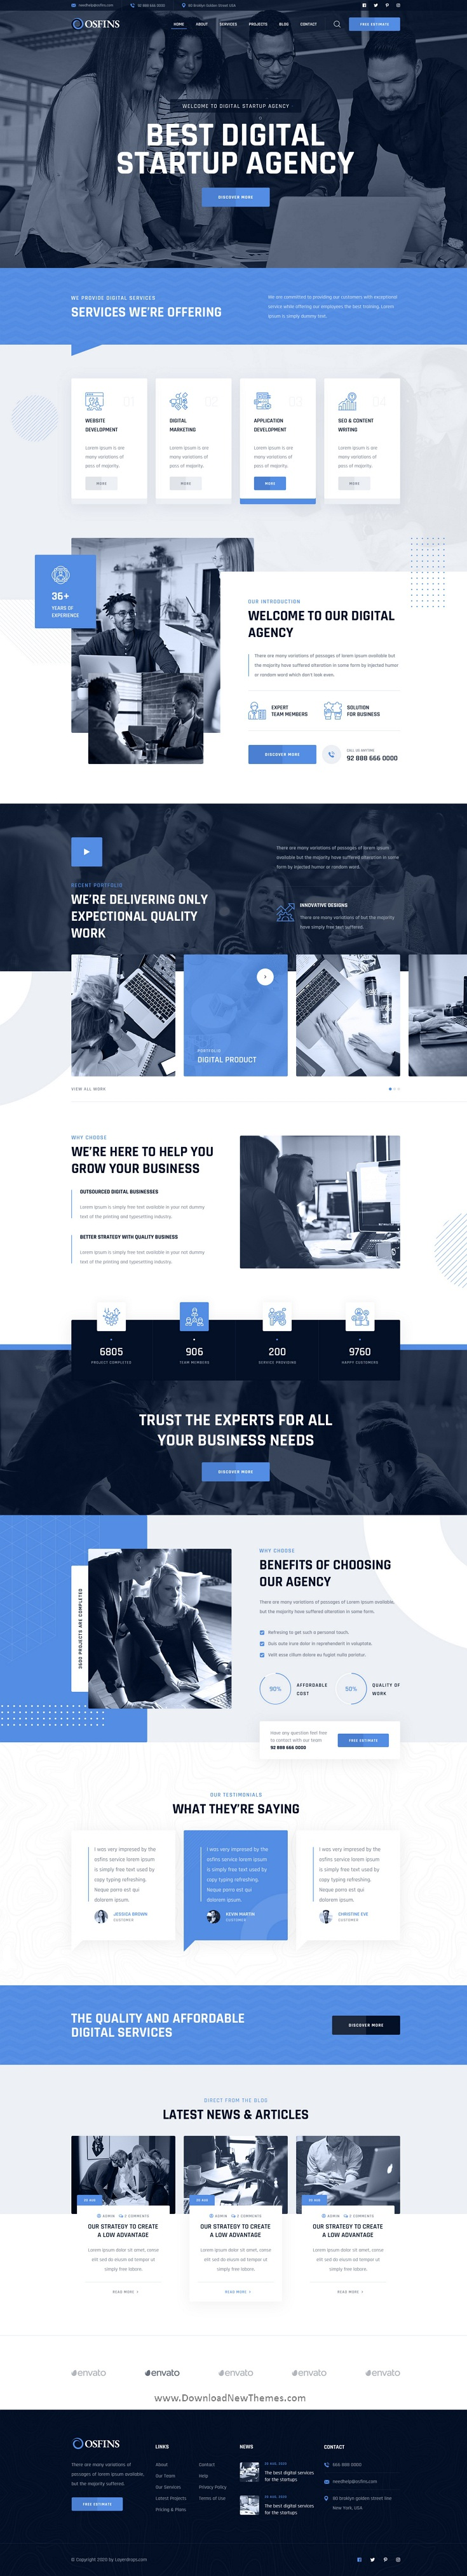 Digital Startup Agency Template